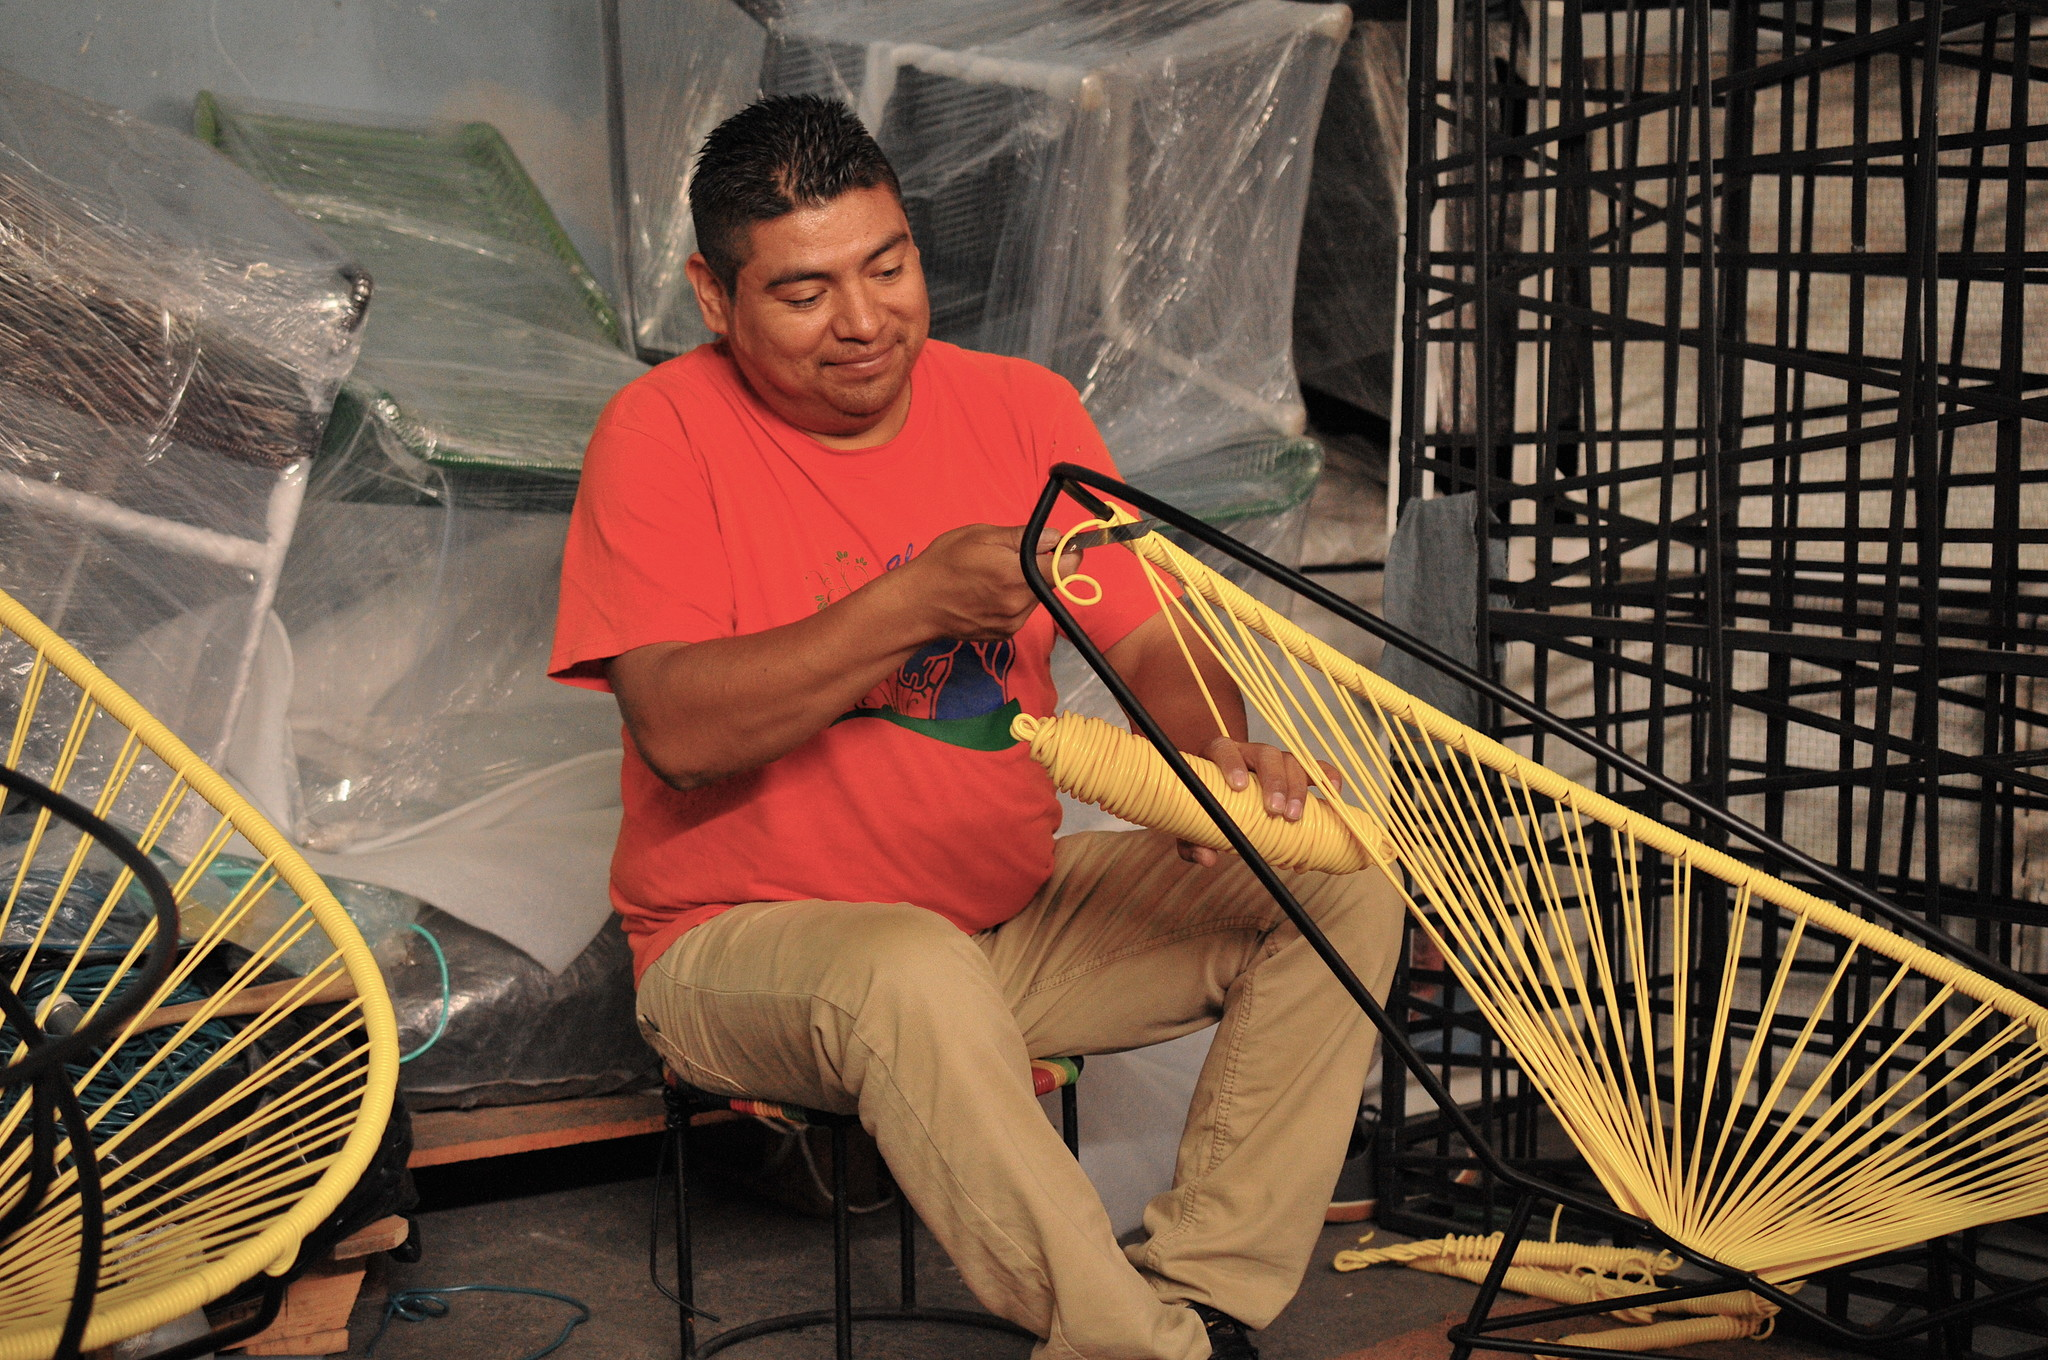 The Original Acapulco Chair: How It's Made